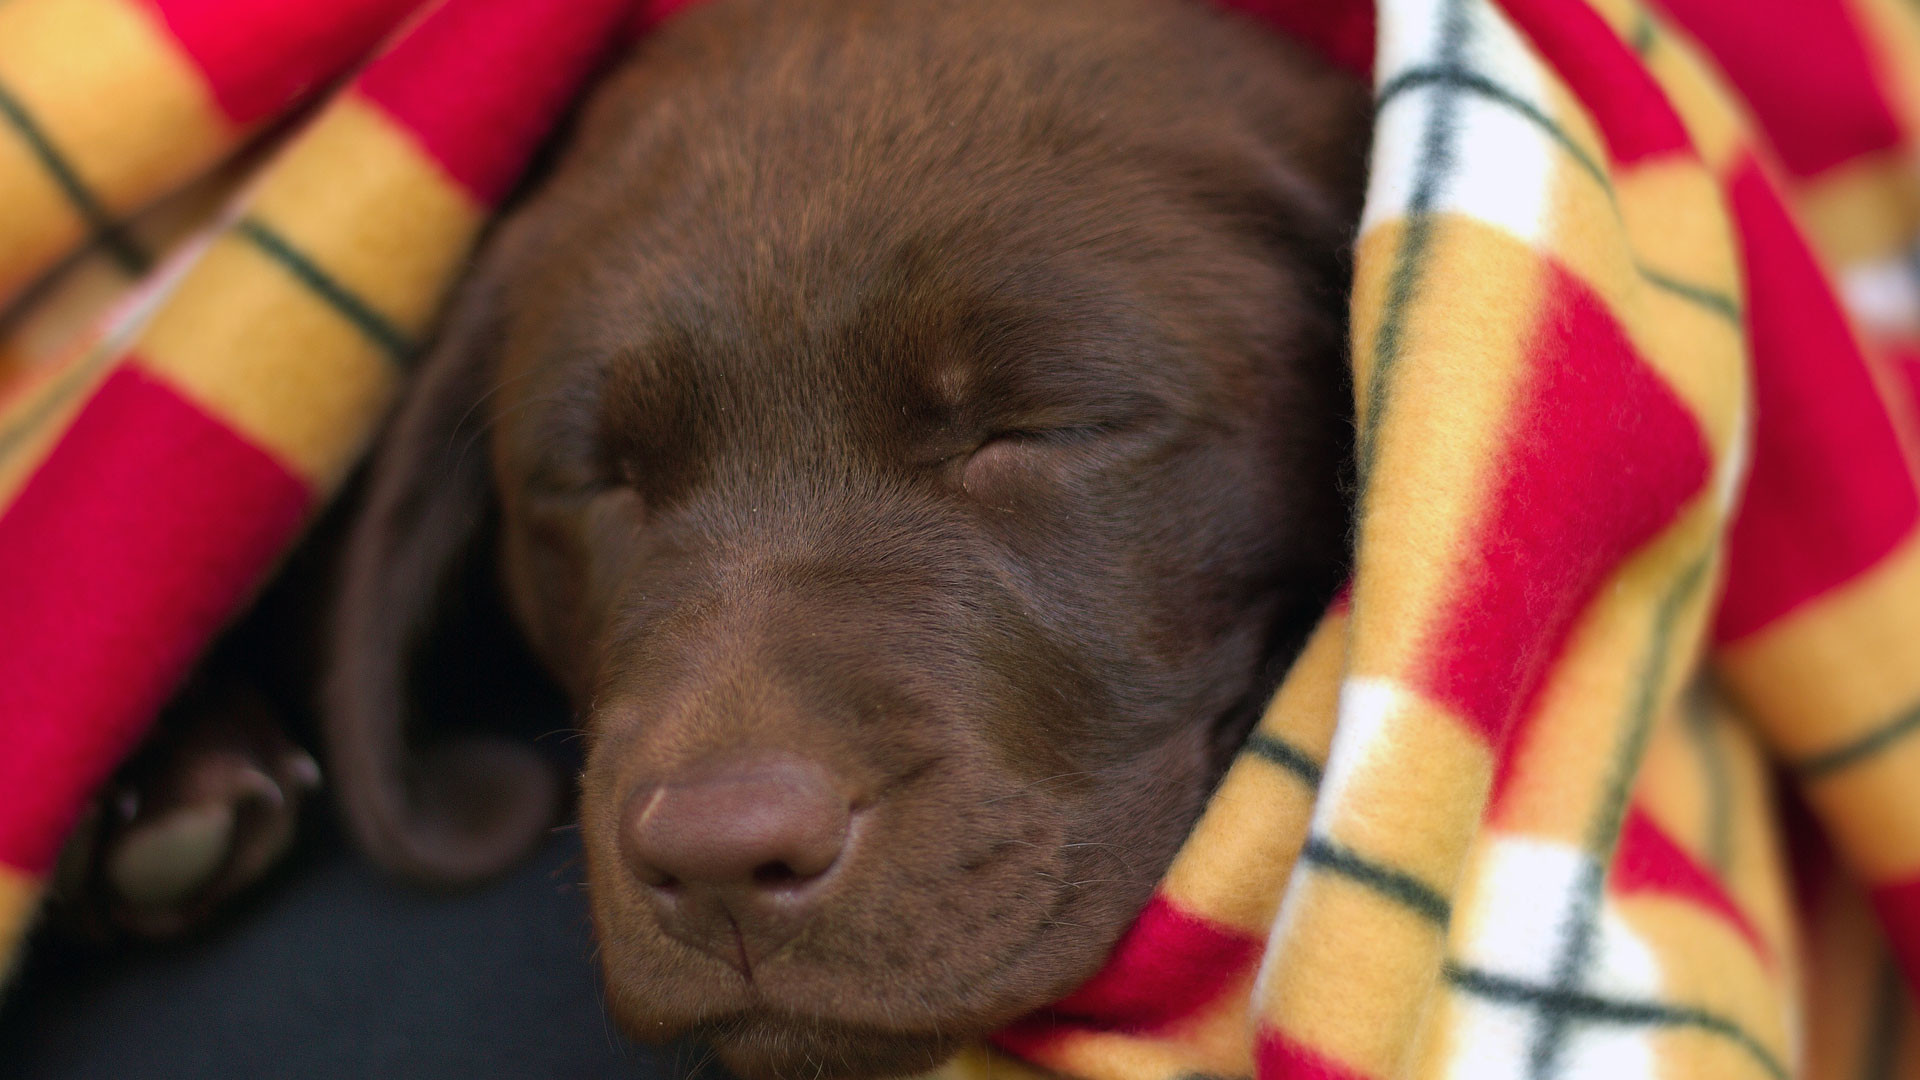 Res: 1920x1080,  |1680x1050 |1440x900 |1280x1024 | 800x600. Description: A chocolate  labrador ...